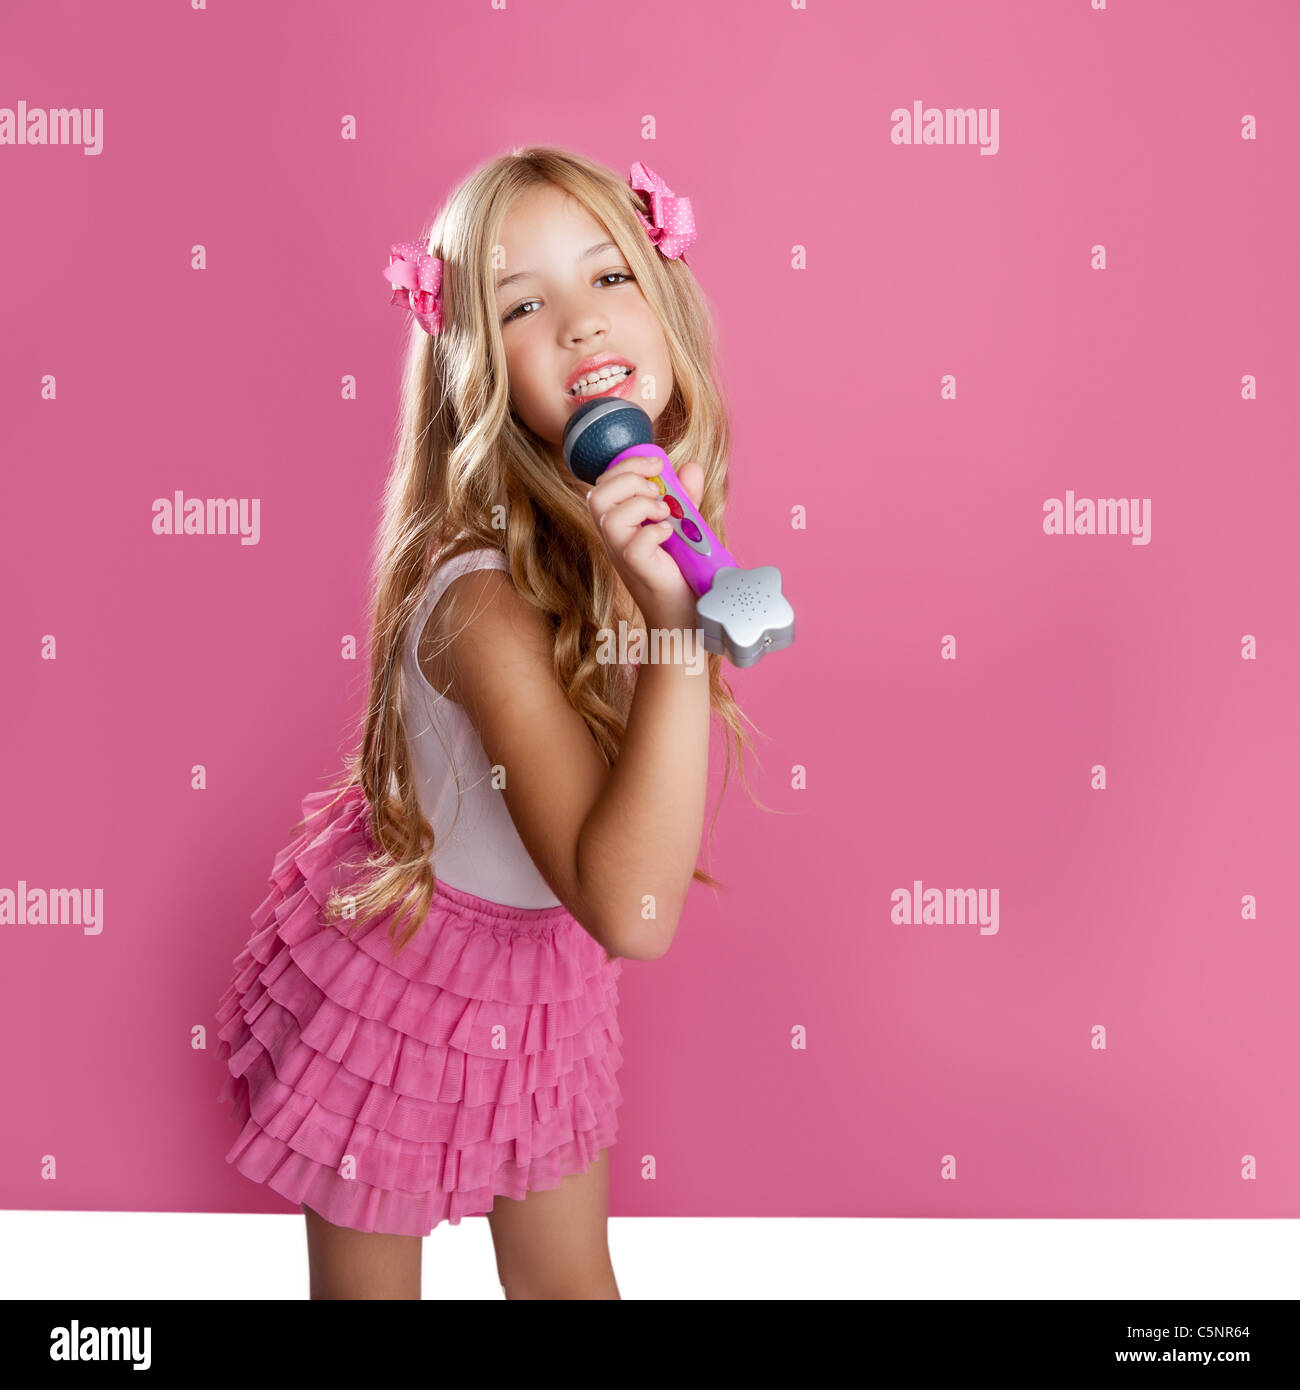 Children Little Star Singer Like Blond Fashion Doll With Mic Over Pink  Background - Stock Photo